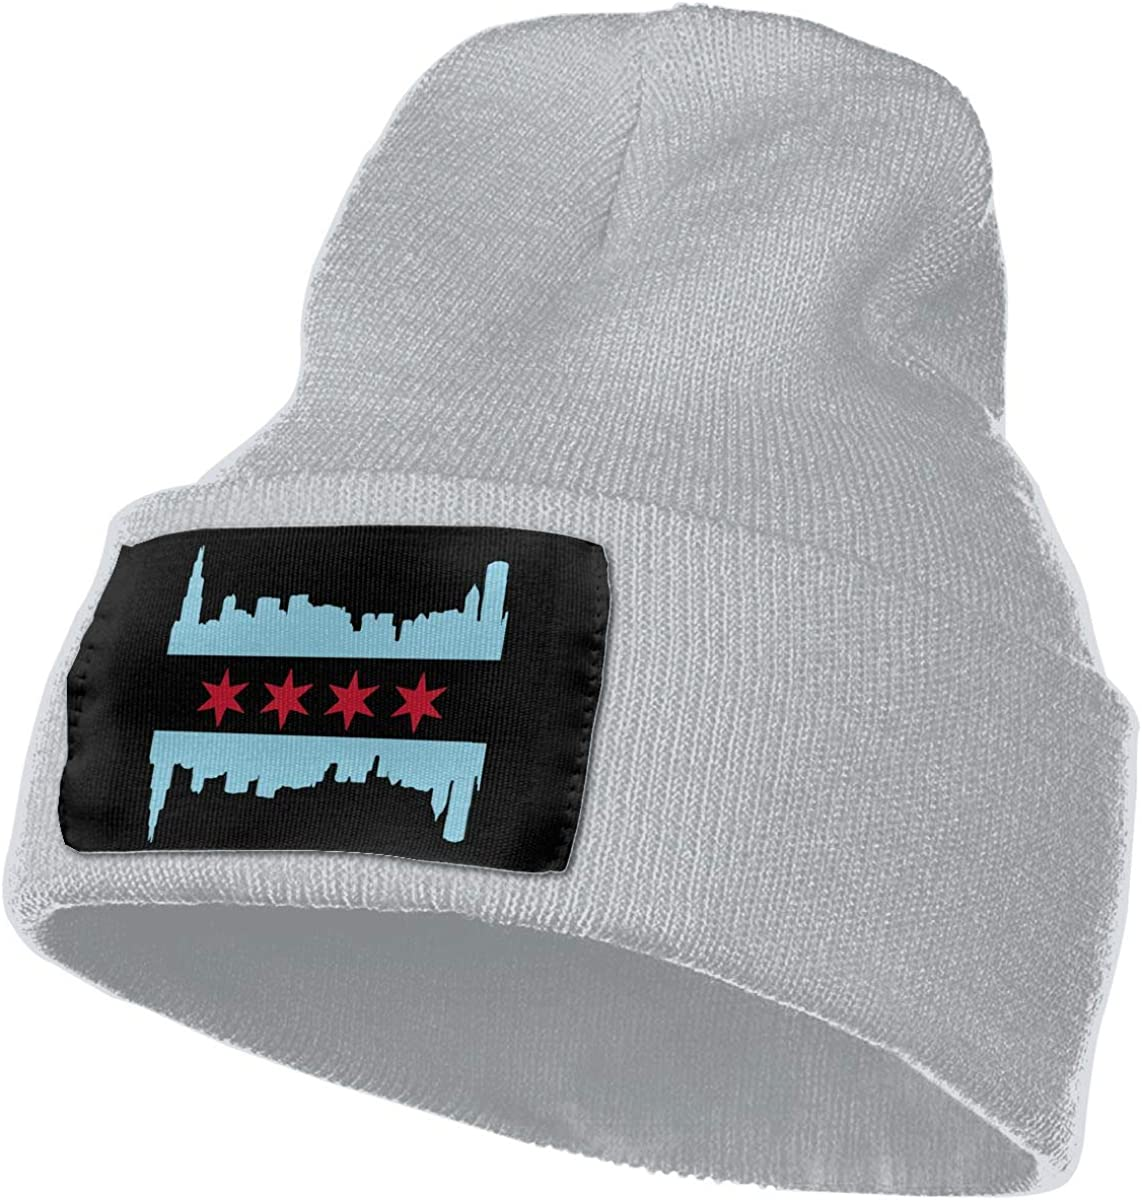 WHOO93@Y Mens and Womens 100/% Acrylic Knitting Hat Cap Chicago Flag with Buildings Skyline Thick Ski Cap